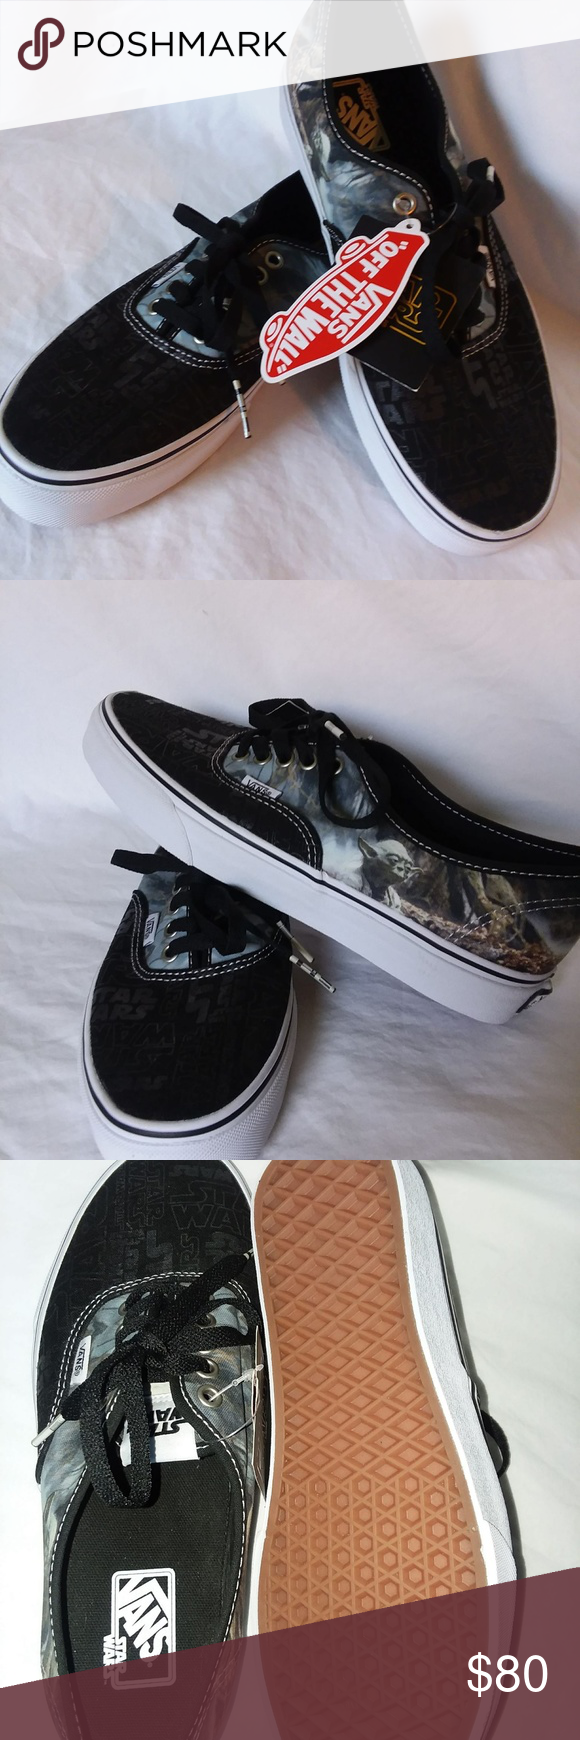 b78df507ad VAN s Star Wars Shoes Unisex Shoes Brand NEW VAN s Stars Wars Shoes Brand  NEW with Tags Unisex Shoes Womens Size 9.5 Mens Size 8 These are some  awesome ...